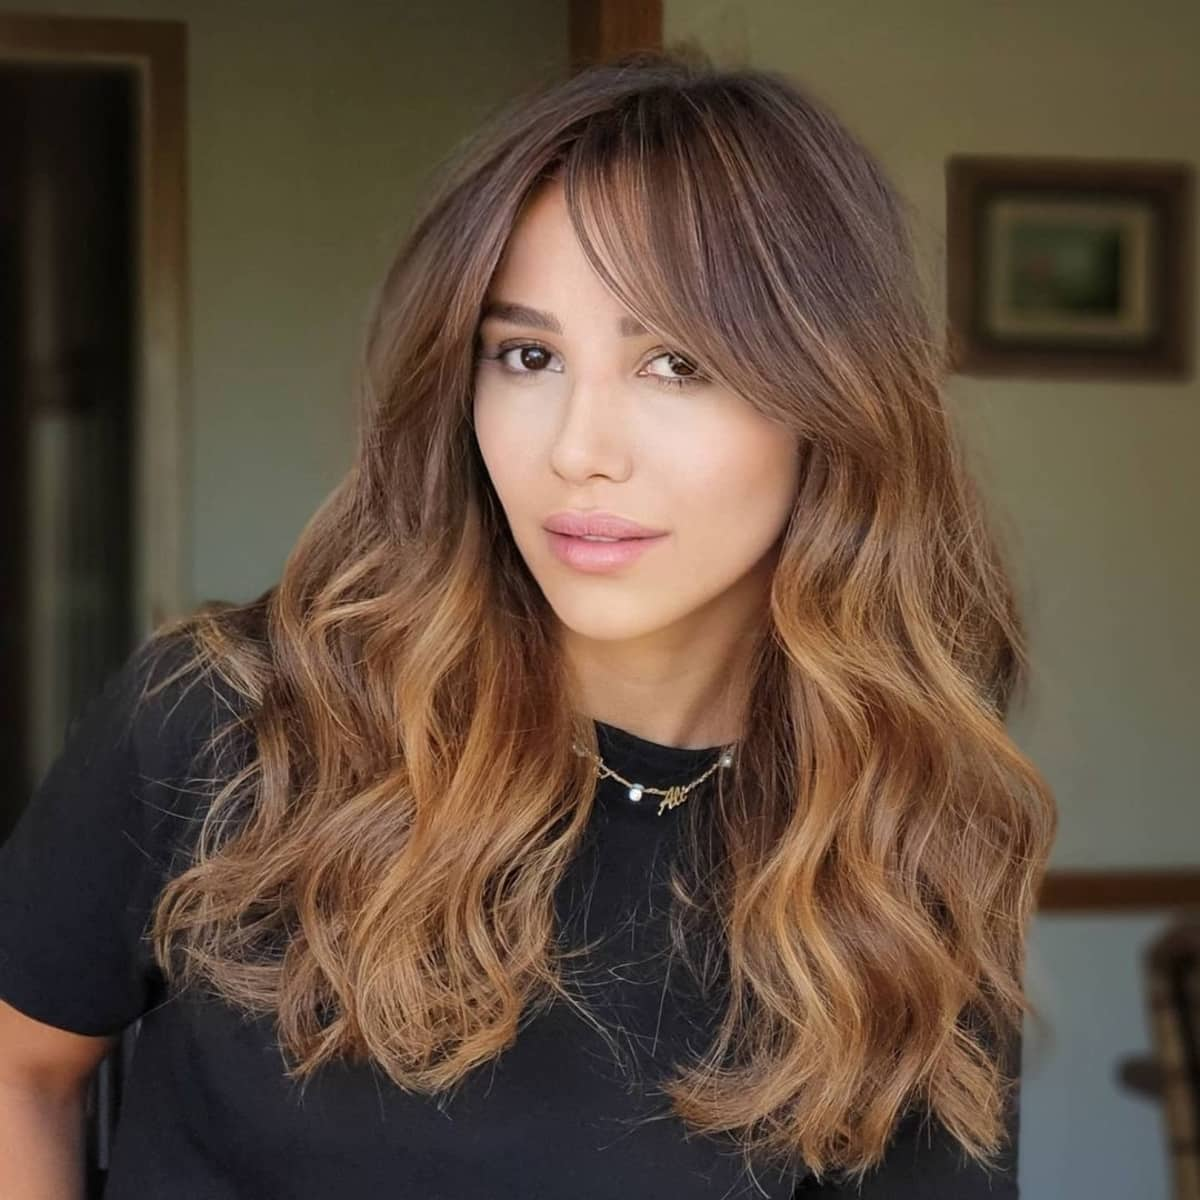 39 Best Examples of Long Hair With Bangs